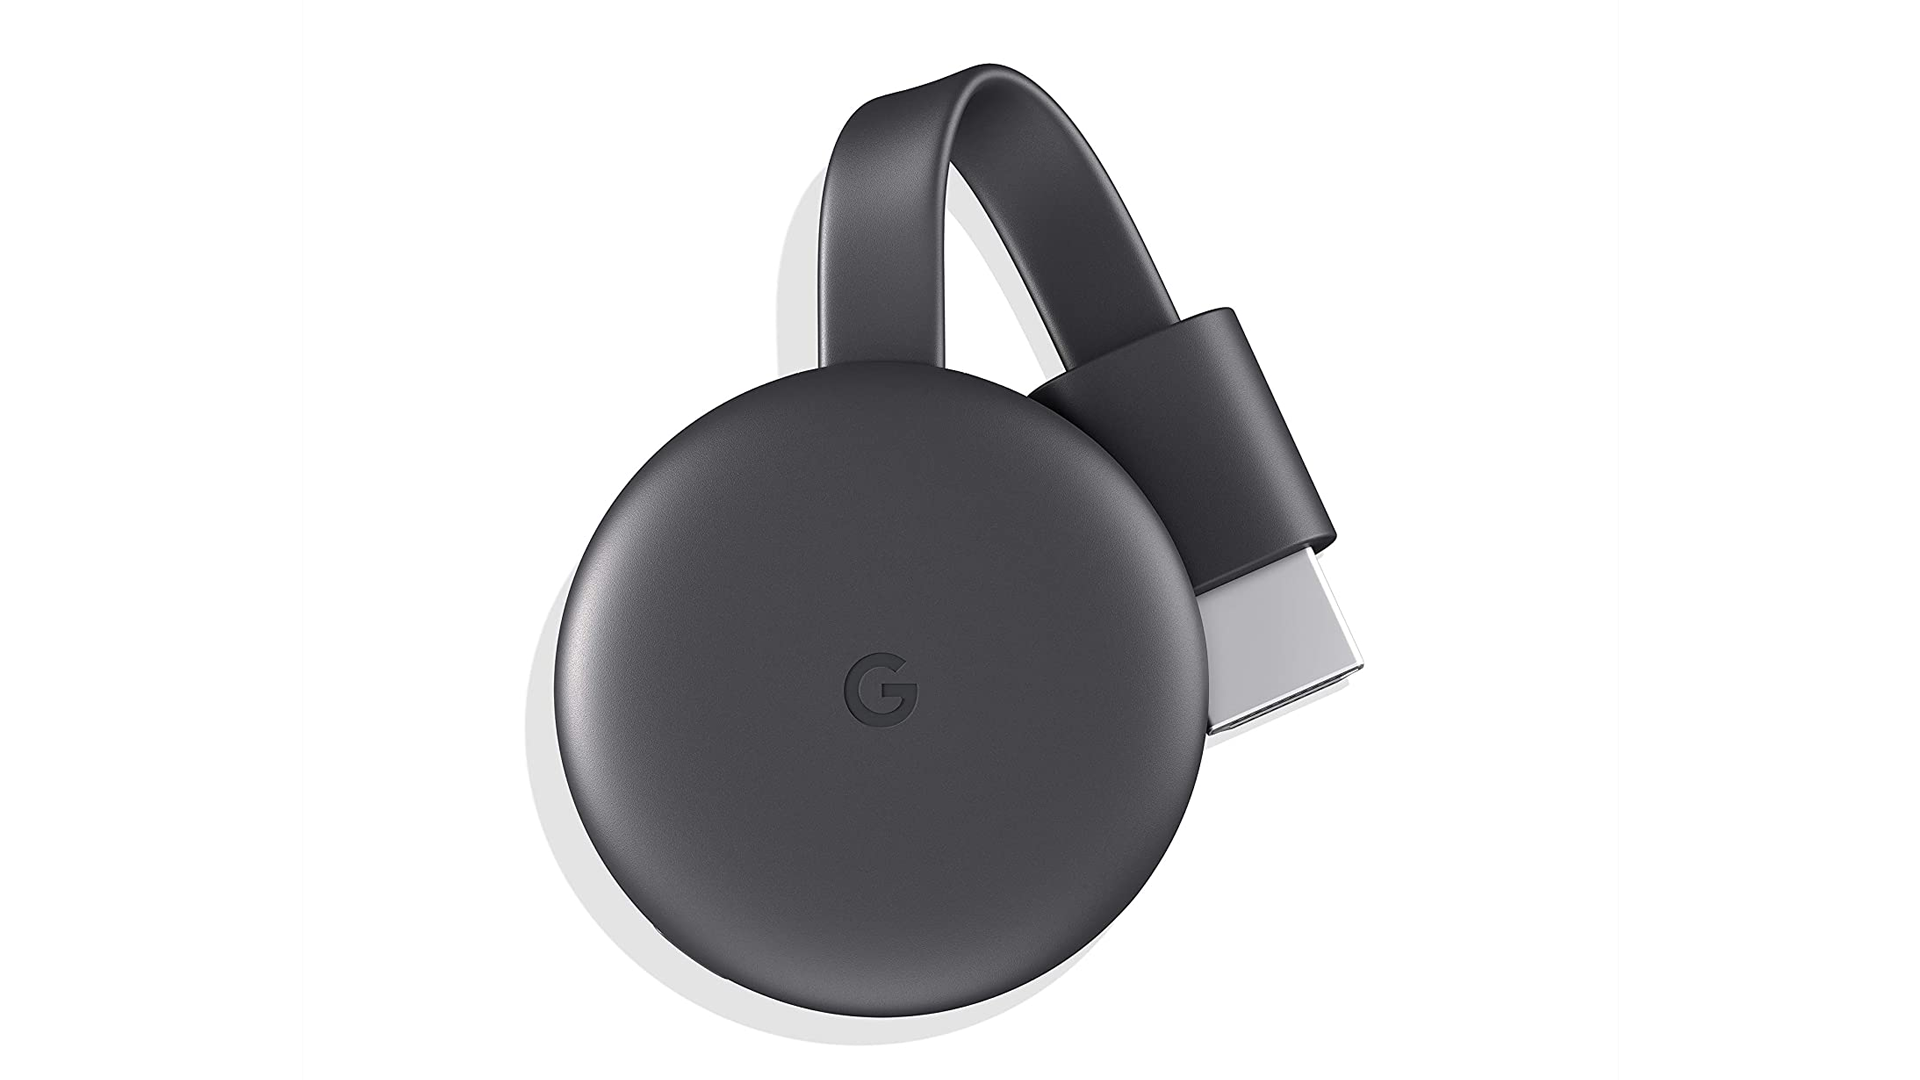 A photo of the Google Chromecast streaming dongle.